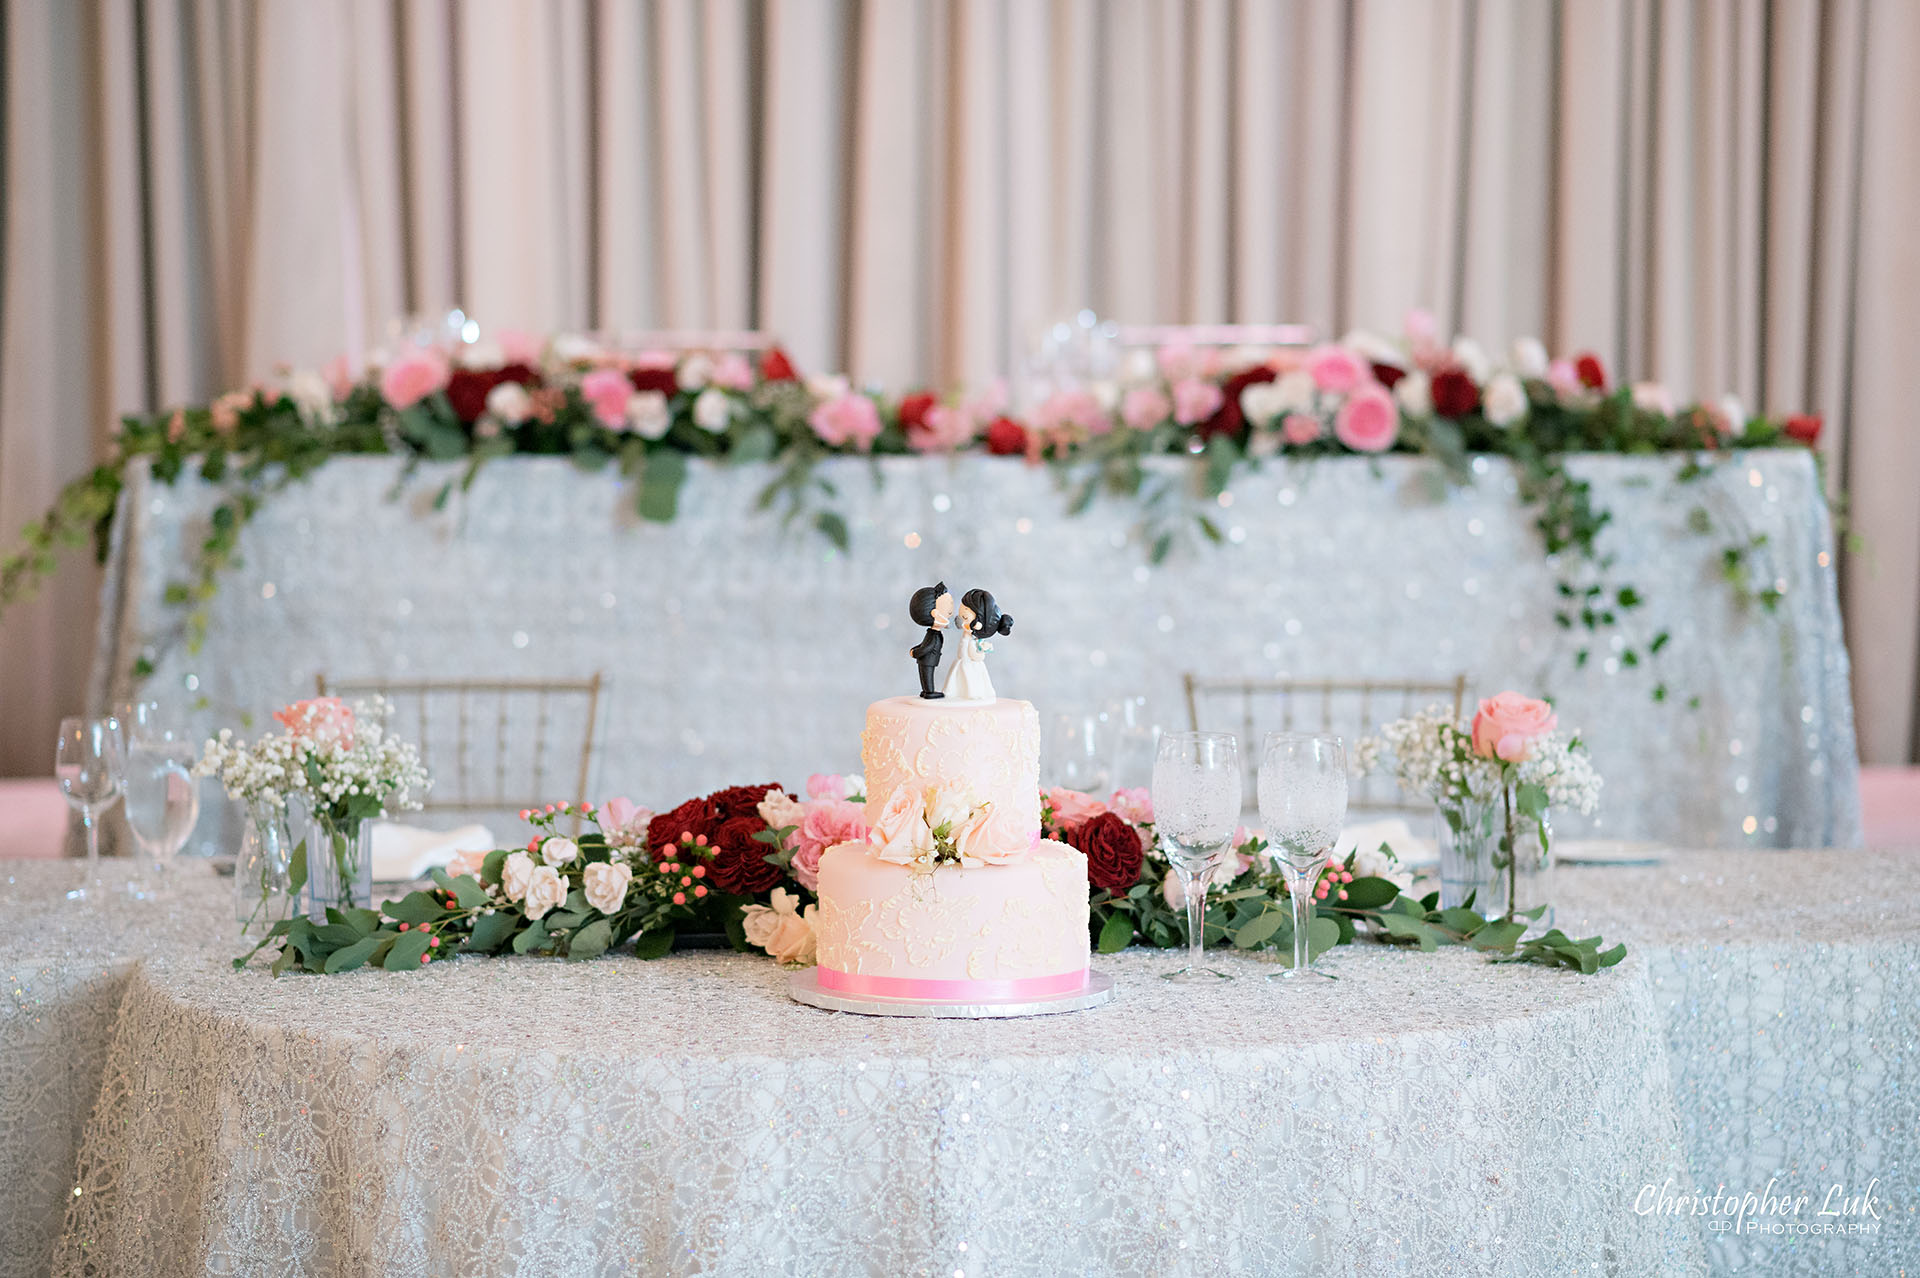 Christopher Luk Toronto Wedding Photographer Bridle Trail Baptist Church Unionville Main Street Crystal Fountain Event Venue Head Table Decor Flower Bell by Masami Crystal Linen Setup Cake Coronavirus COVID19 Mask Topper Kissing